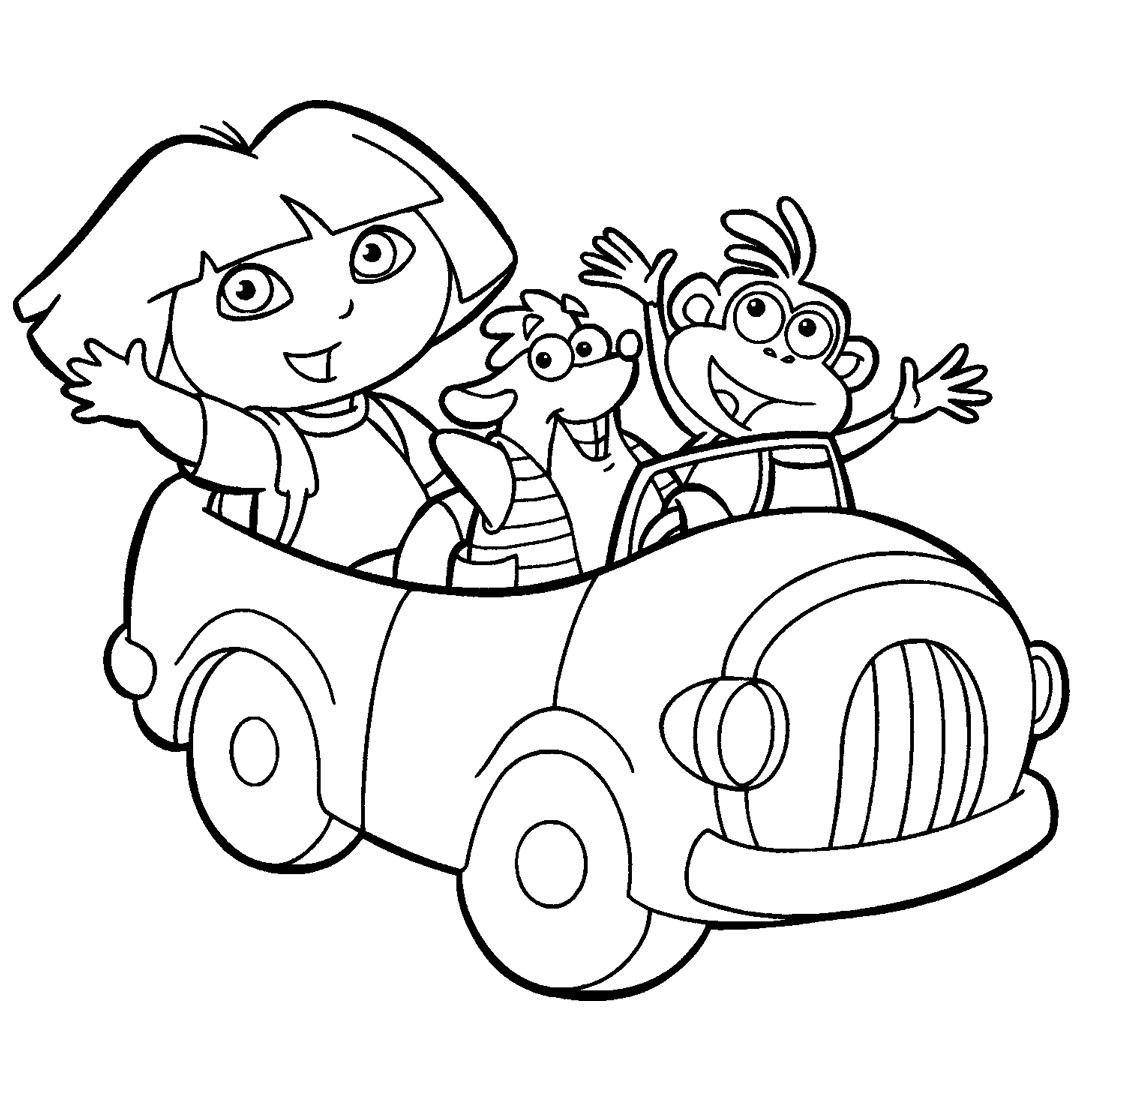 pictures of dora to color dora colouring pictures coloring pages to print color pictures dora of to